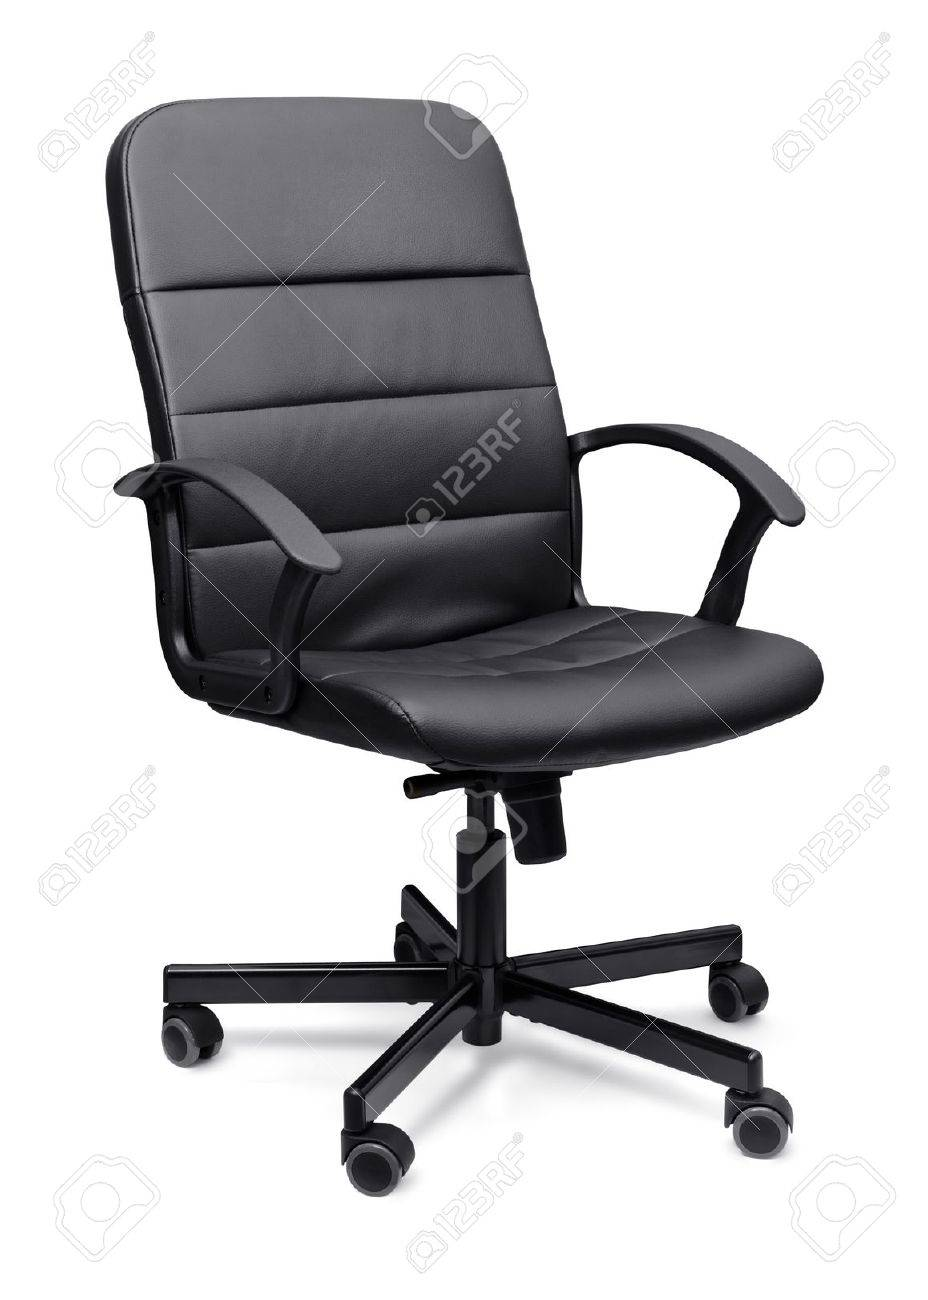 black leather office chair isolated on whit stock photo, picture